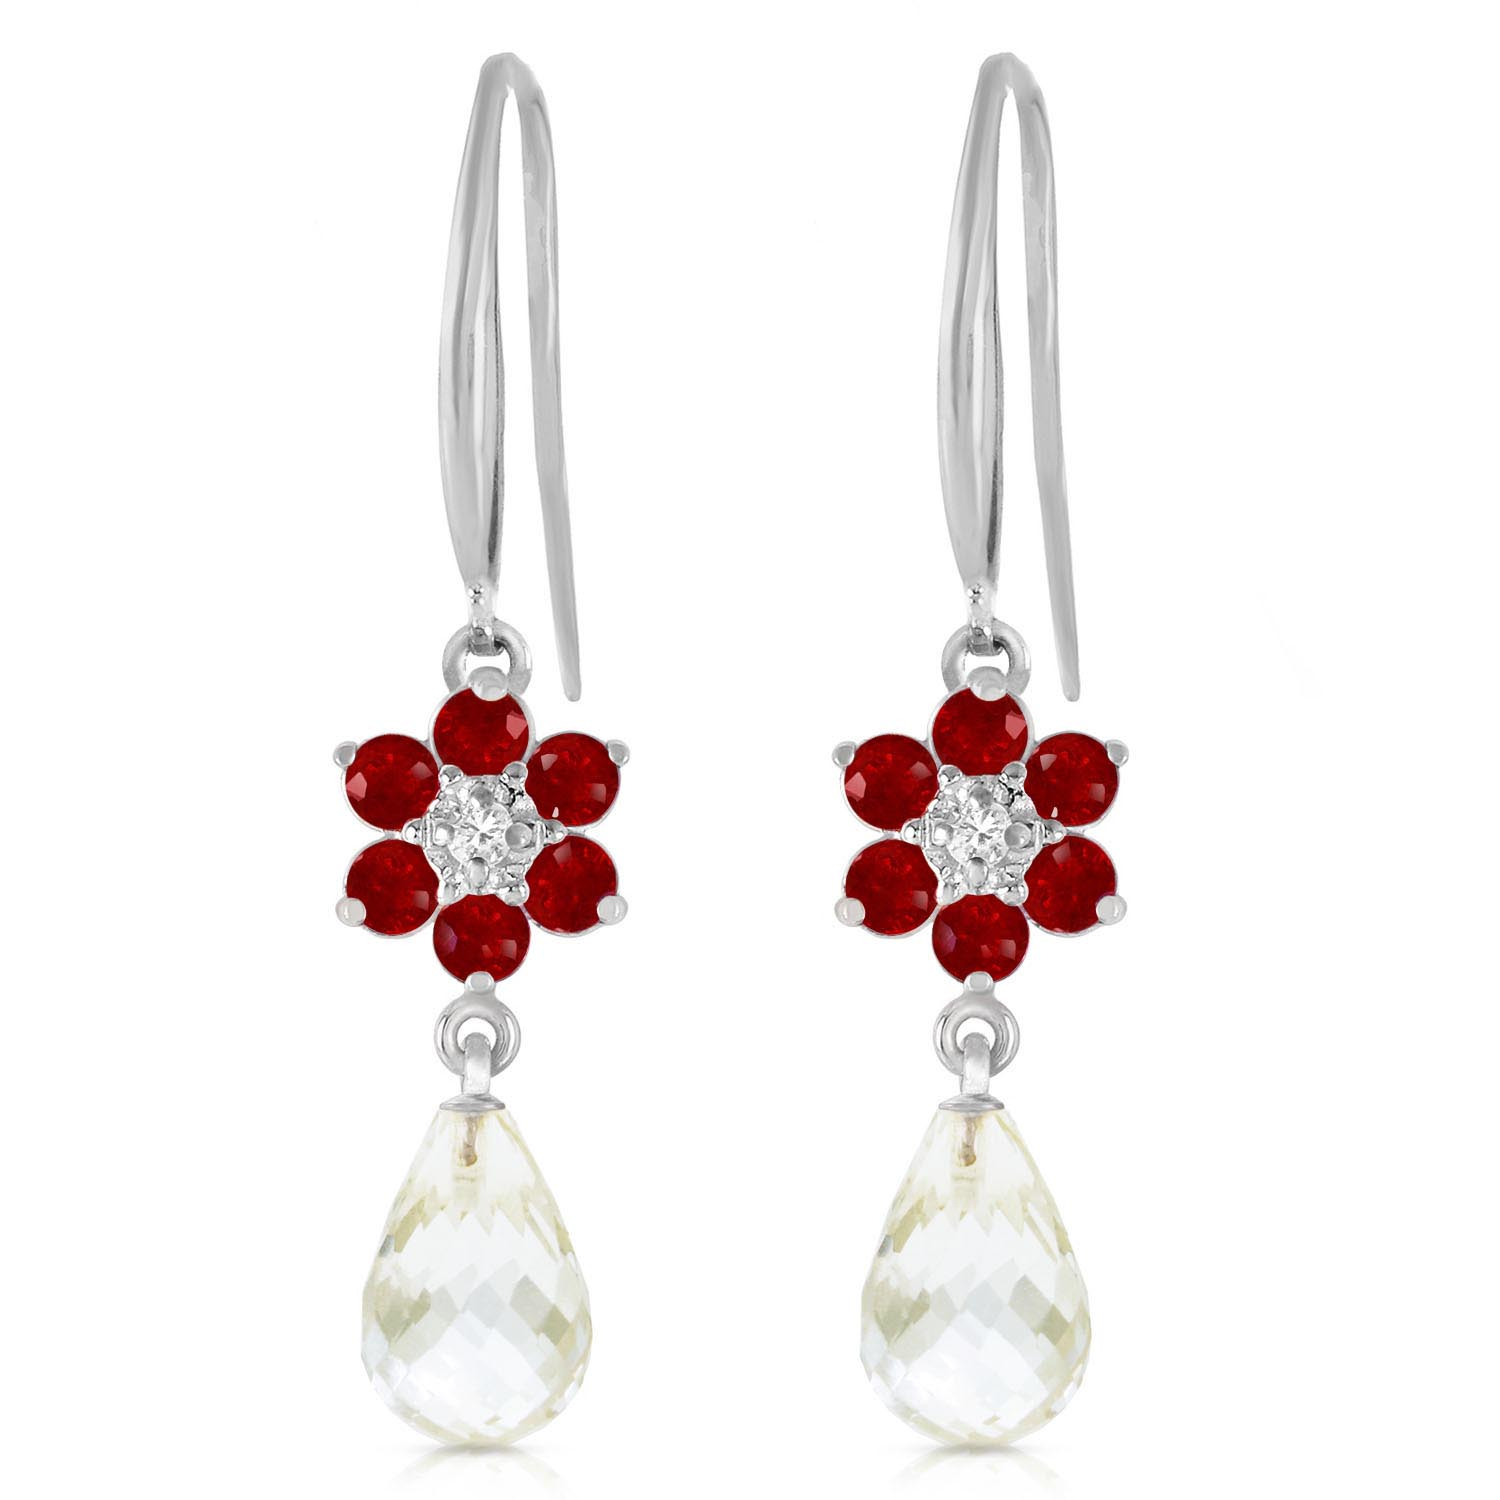 White Topaz, Diamond and Ruby Daisy Chain Drop Earrings 5.45ctw in 9ct White Gold